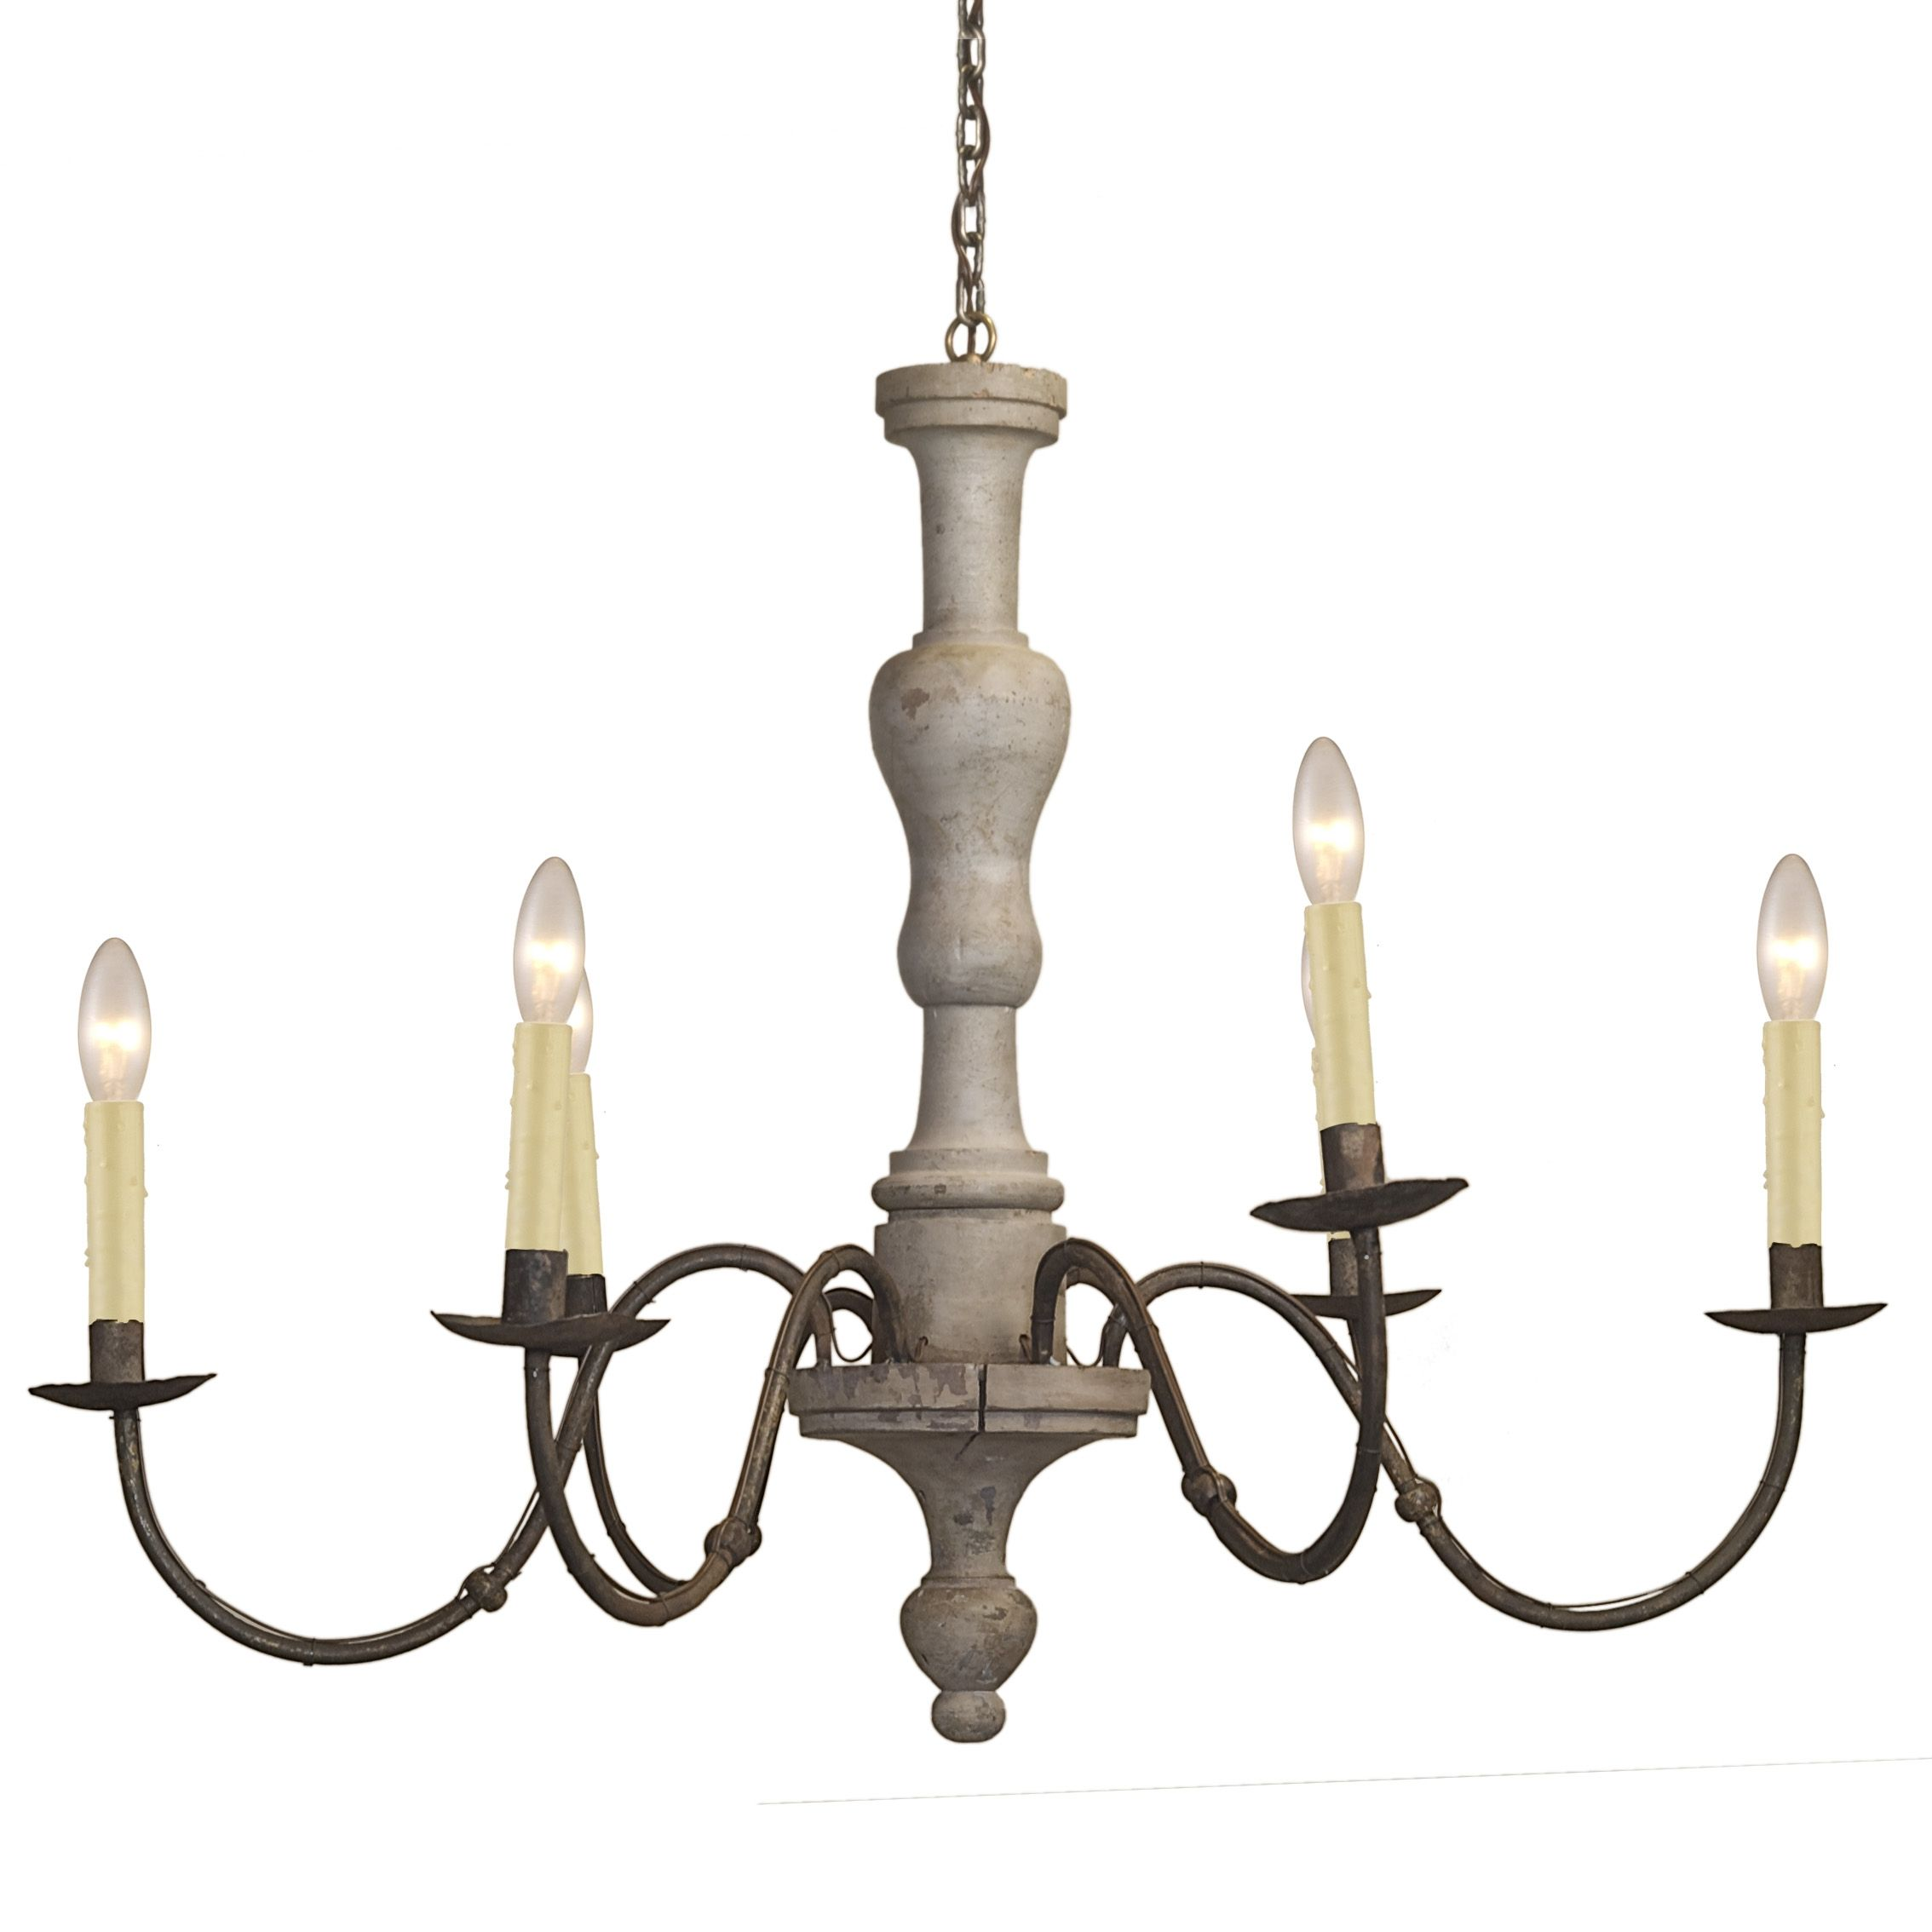 back bolt webshop grey collection tonone id chandelier